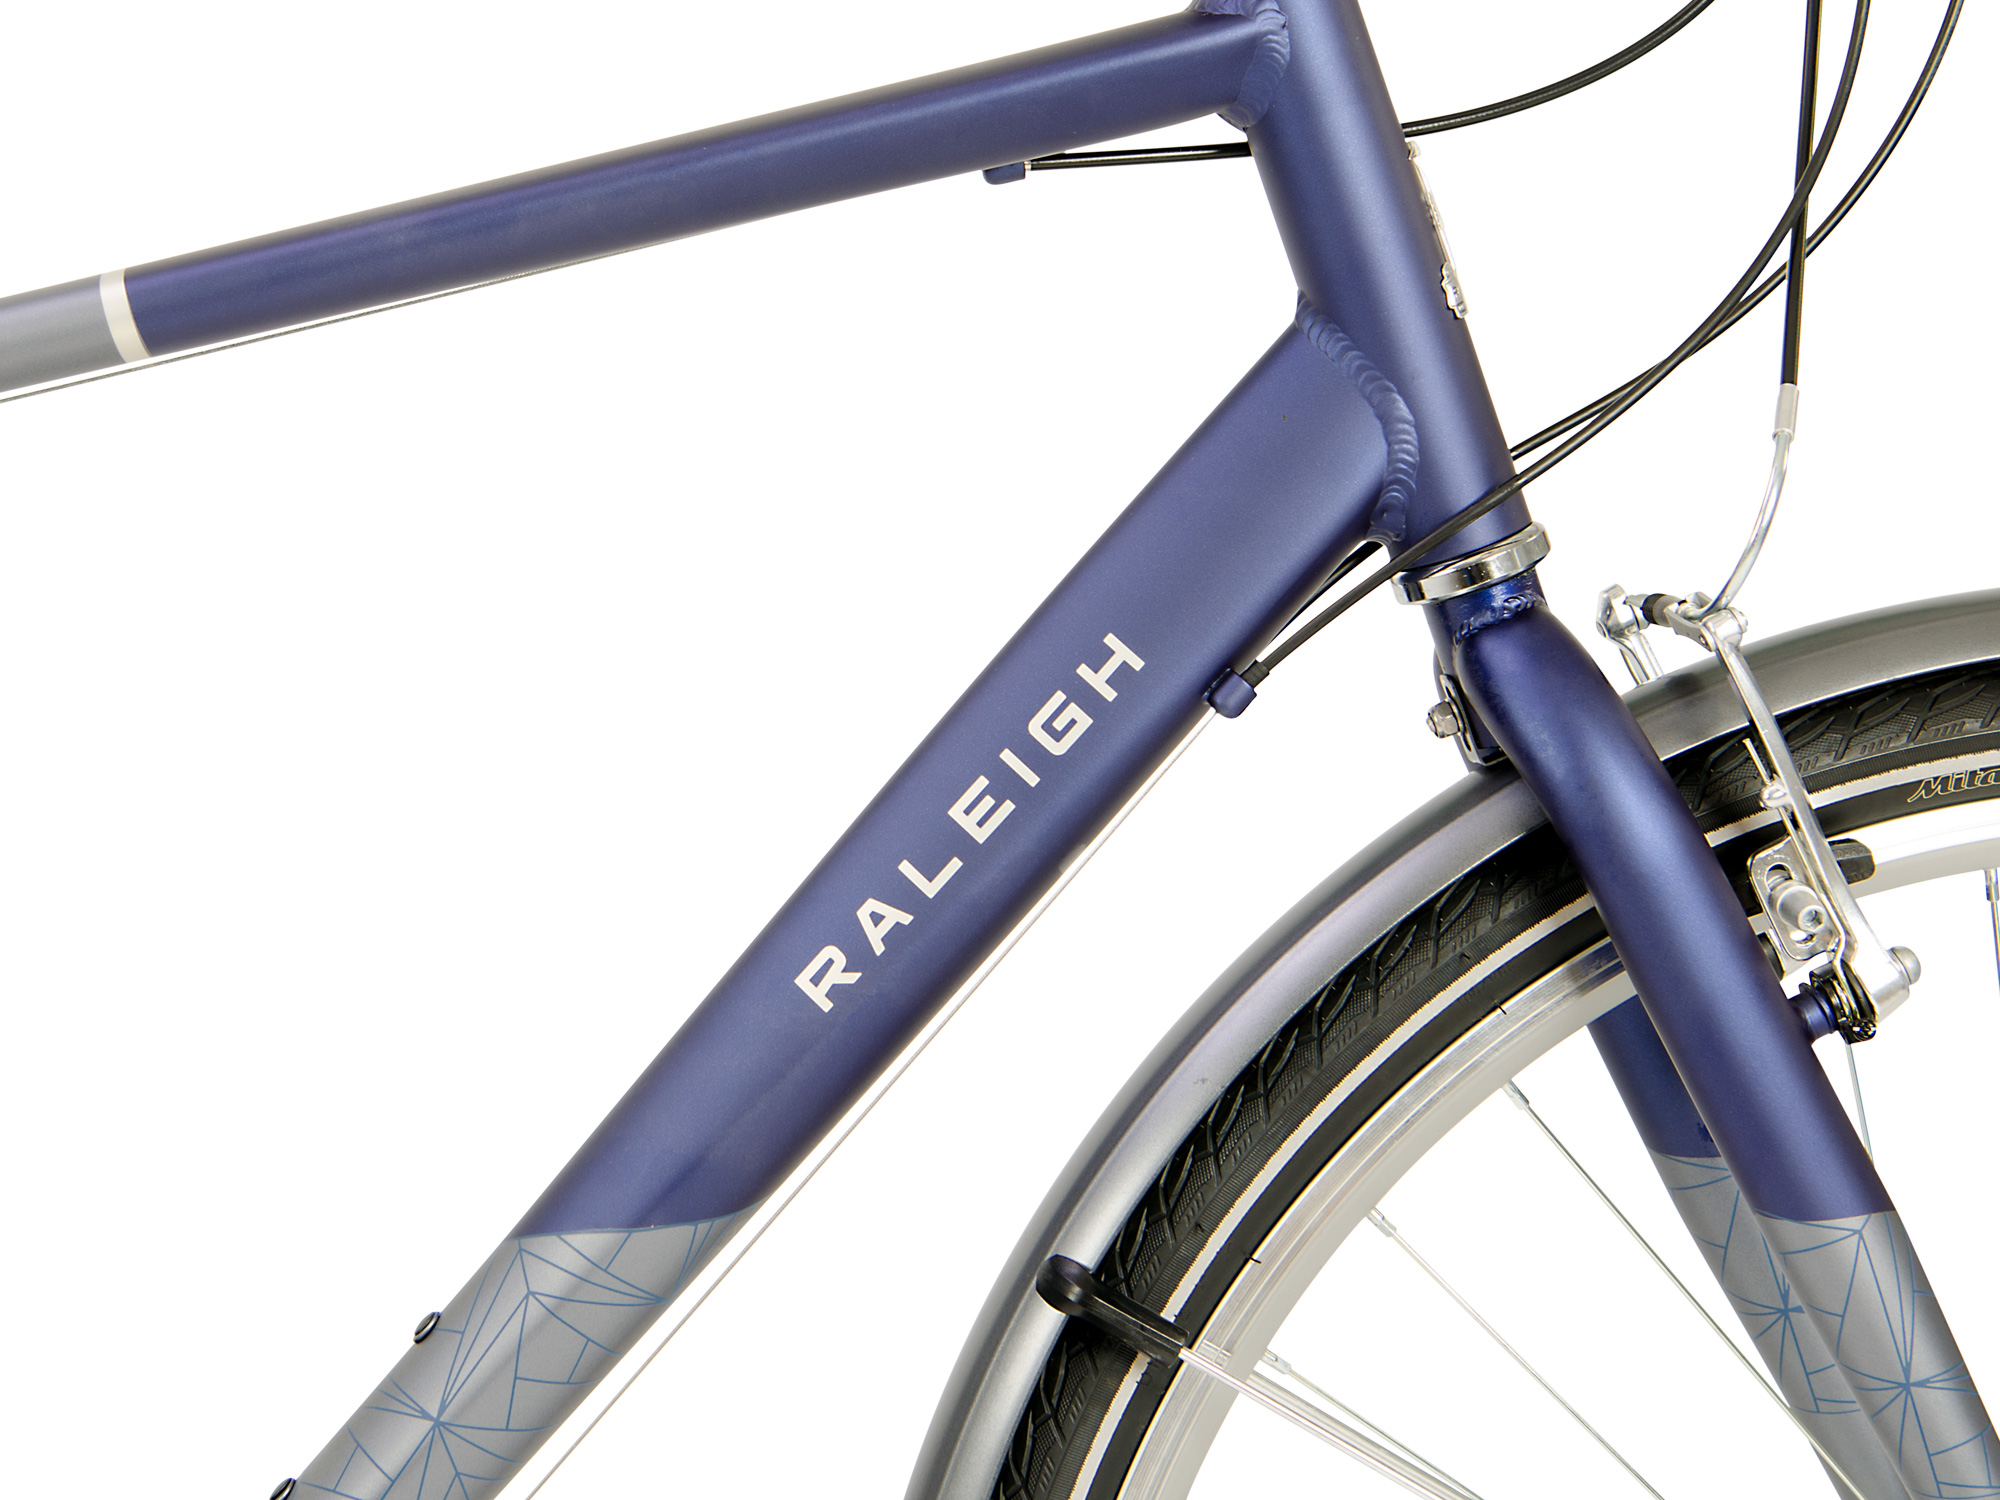 Raleigh Pioneer Tour Crossbar Raleigh frame front